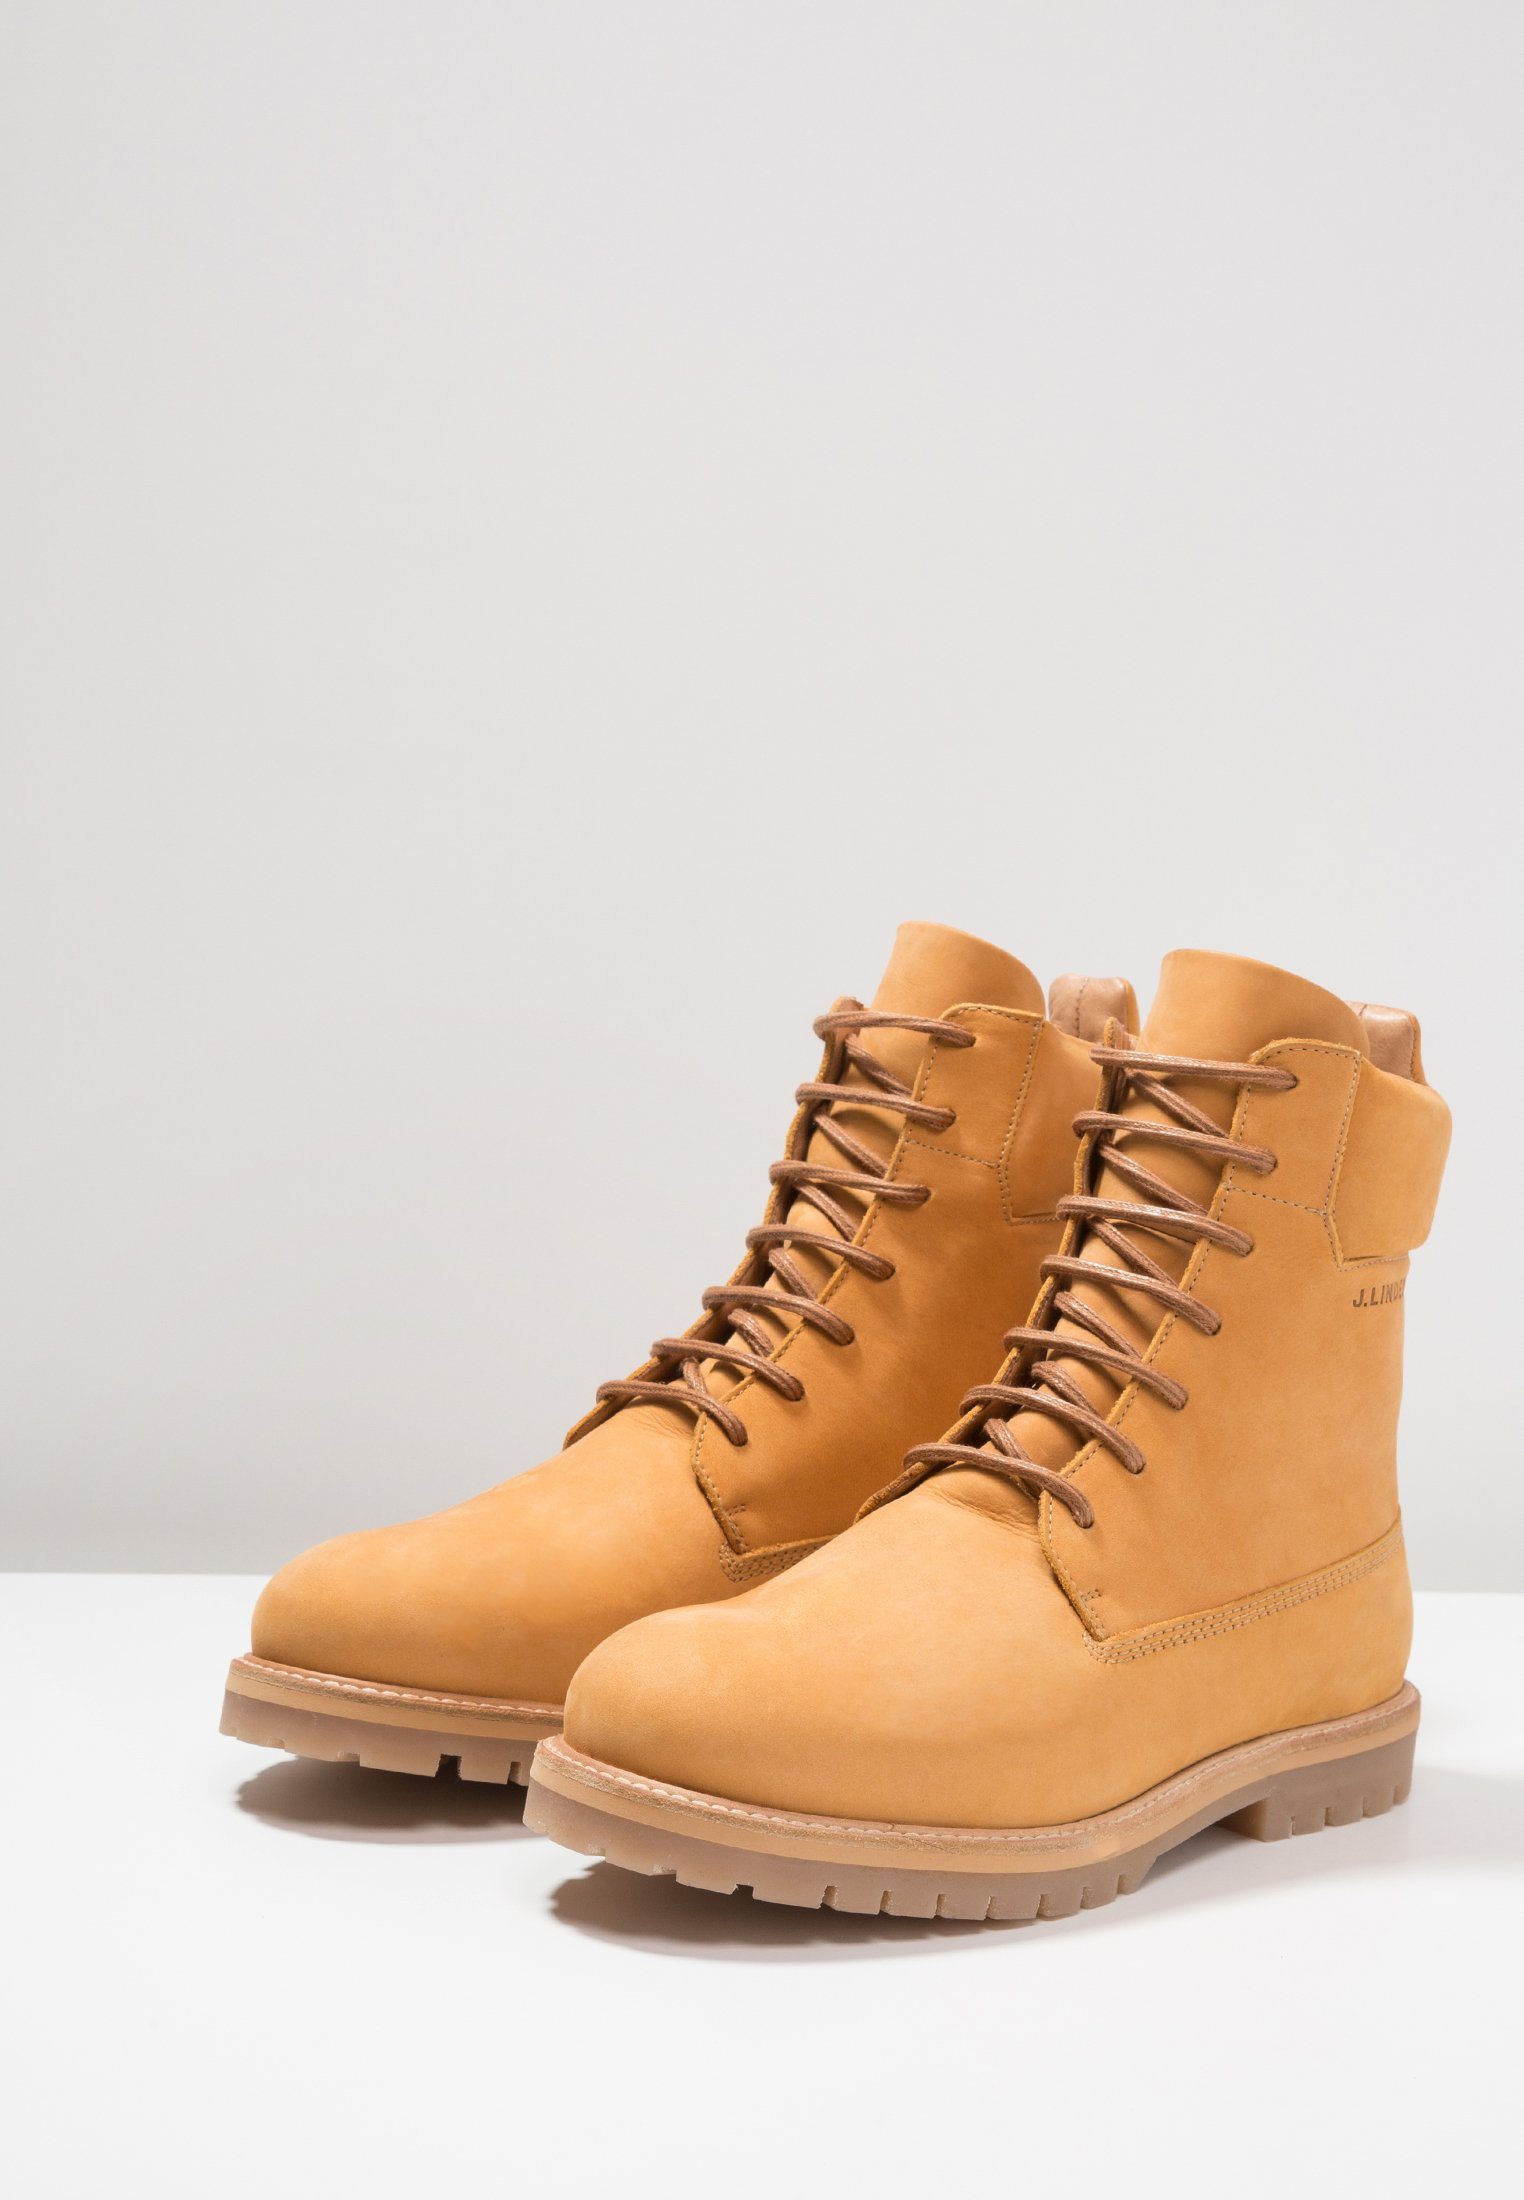 J.LINDEBERG TANK HIGH DIFFERENT MIX - Bottines à lacets oxford tan